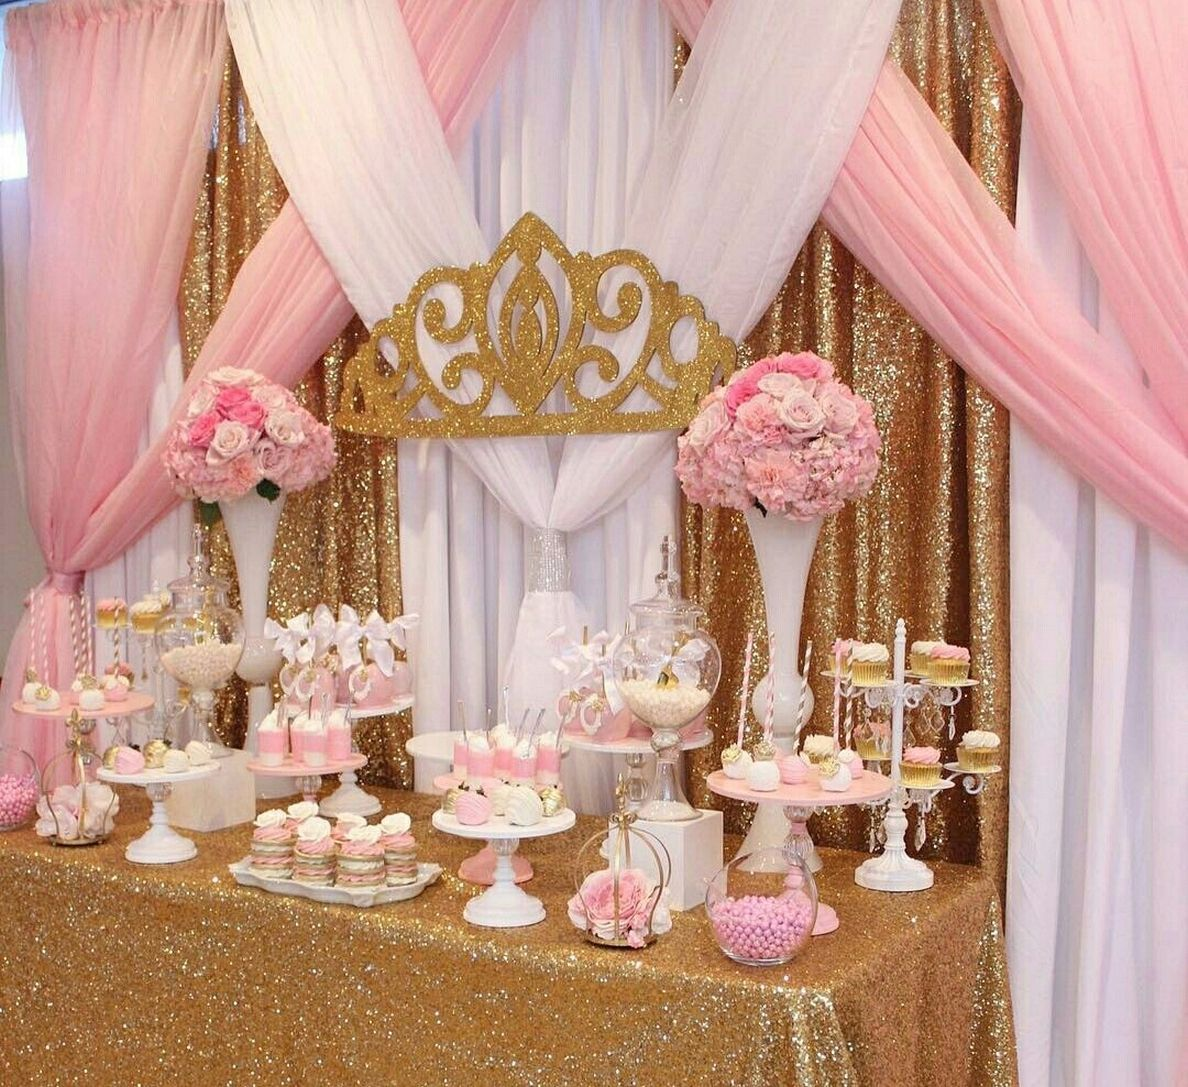 pin by alejandra paredes on princess quincea era quince. Black Bedroom Furniture Sets. Home Design Ideas